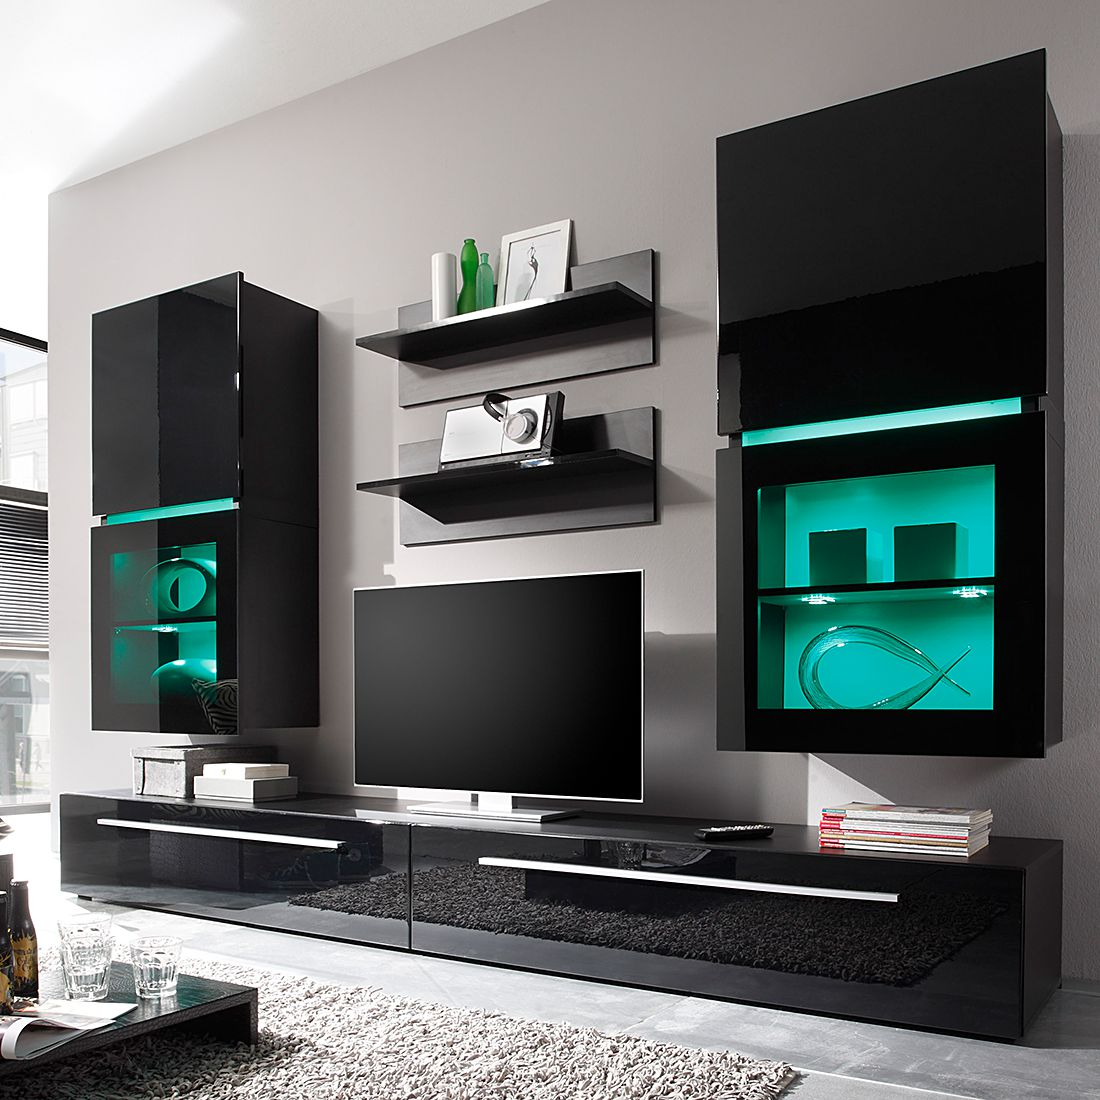 wohnwand schwarz hochglanz mit led die neuesten innenarchitekturideen. Black Bedroom Furniture Sets. Home Design Ideas